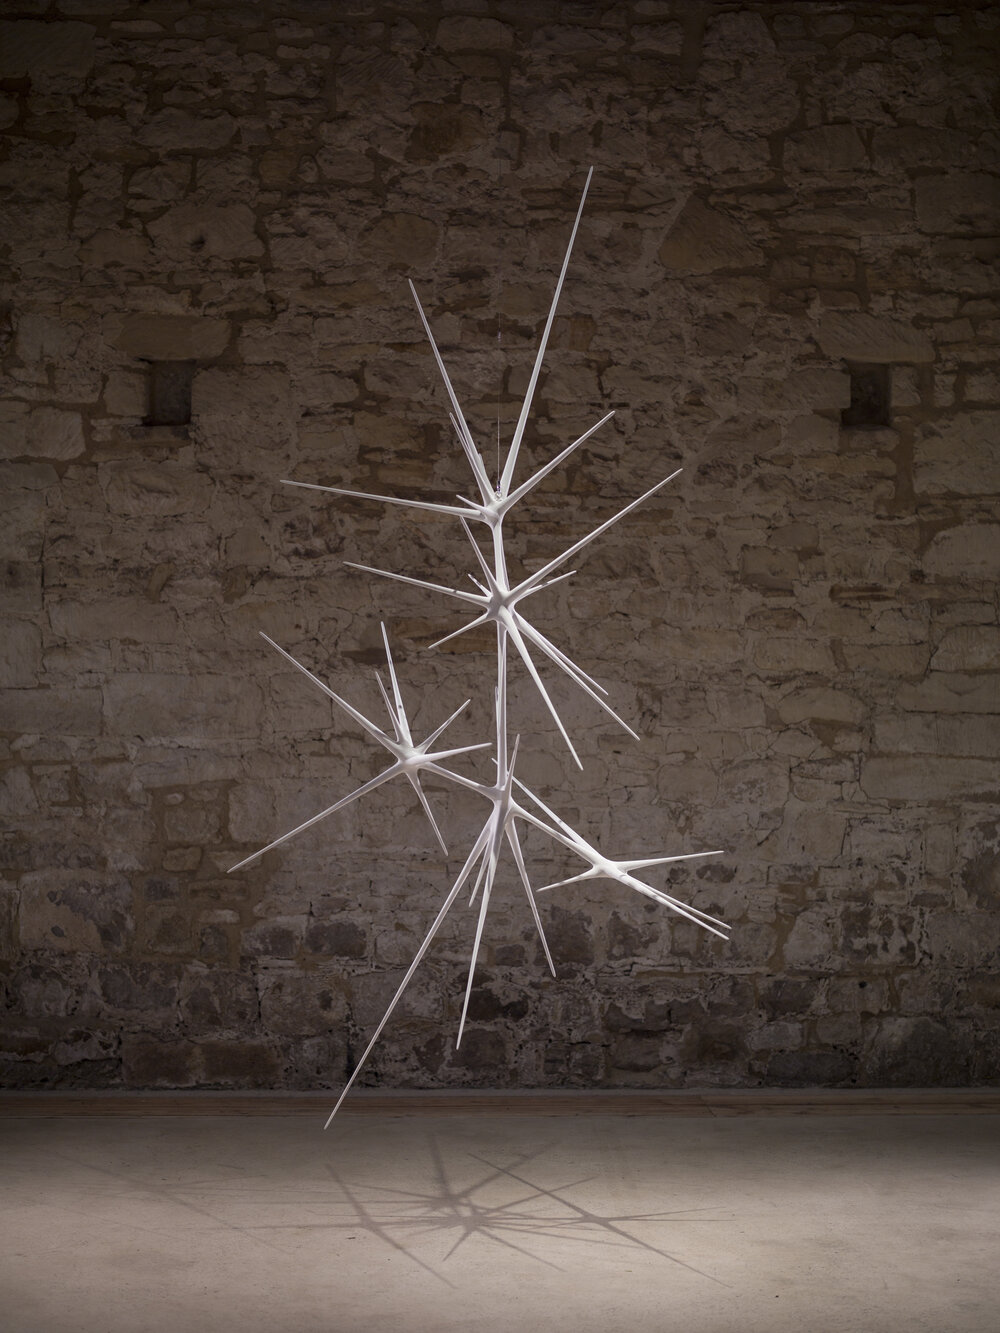 Spiked Sculpture by Christopher Kurtz 8